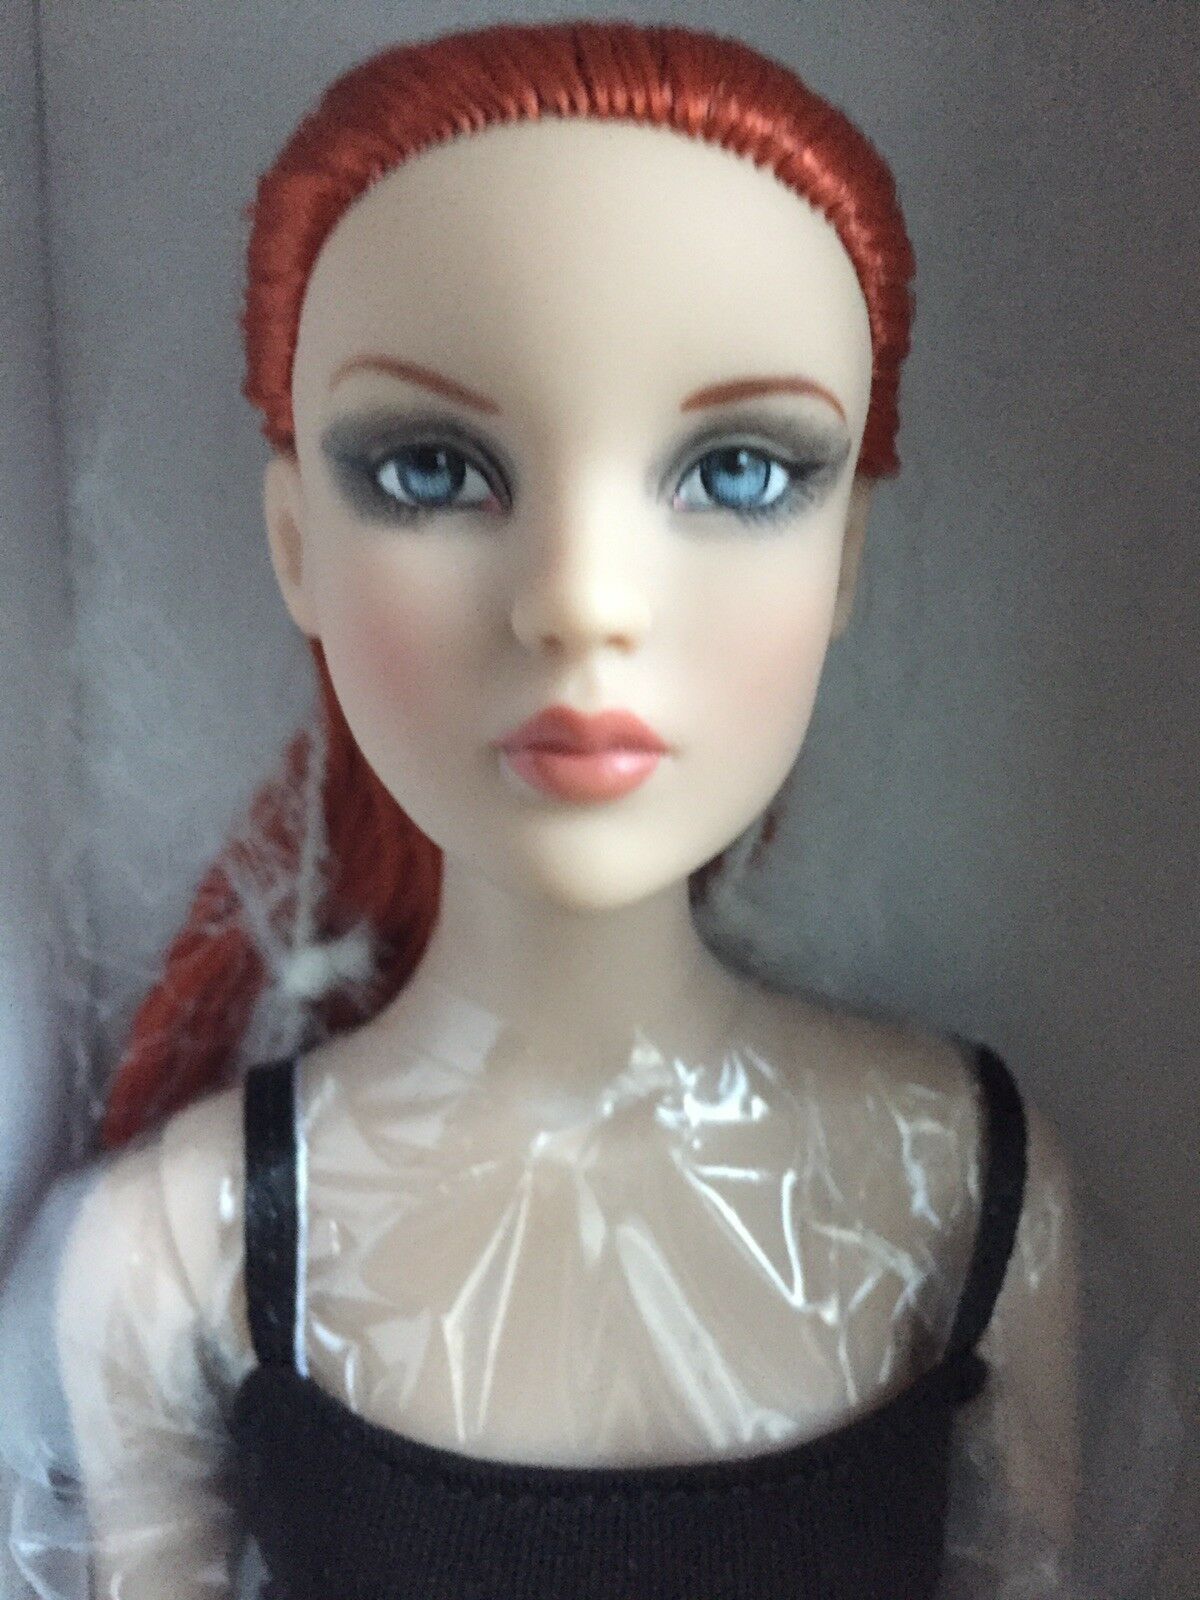 Tonner Tyler Antoinette 16  2012 PERFECT MORNING CAMI rotHEAD FASHION DOLL NRFB